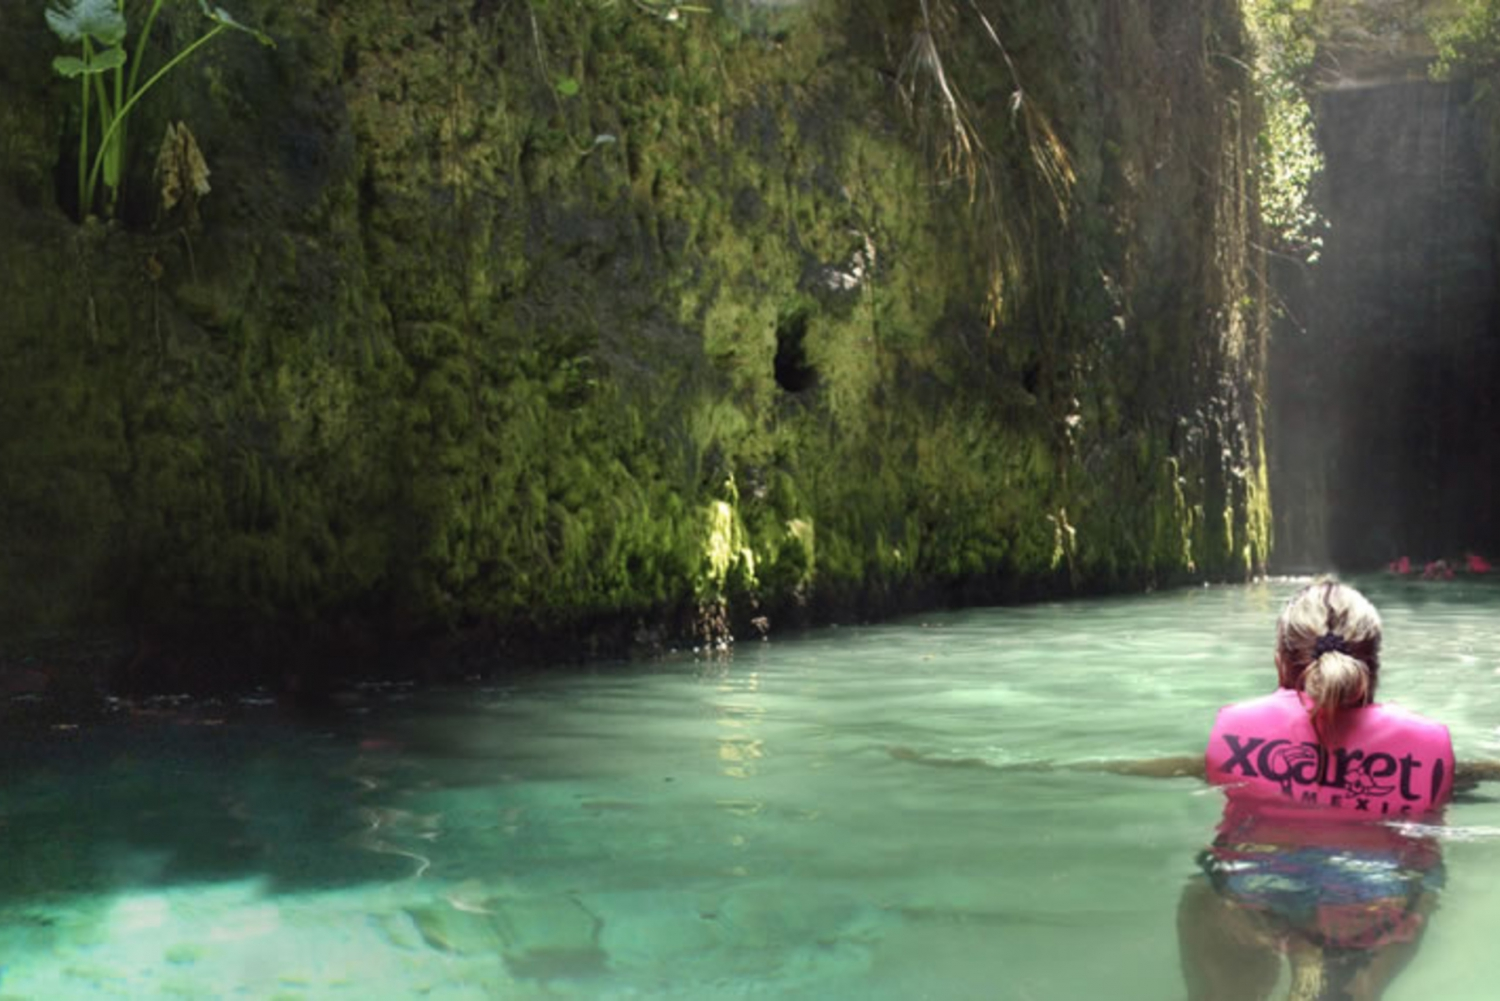 Xcaret 'Plus' Tour: Transfers from Riviera Maya